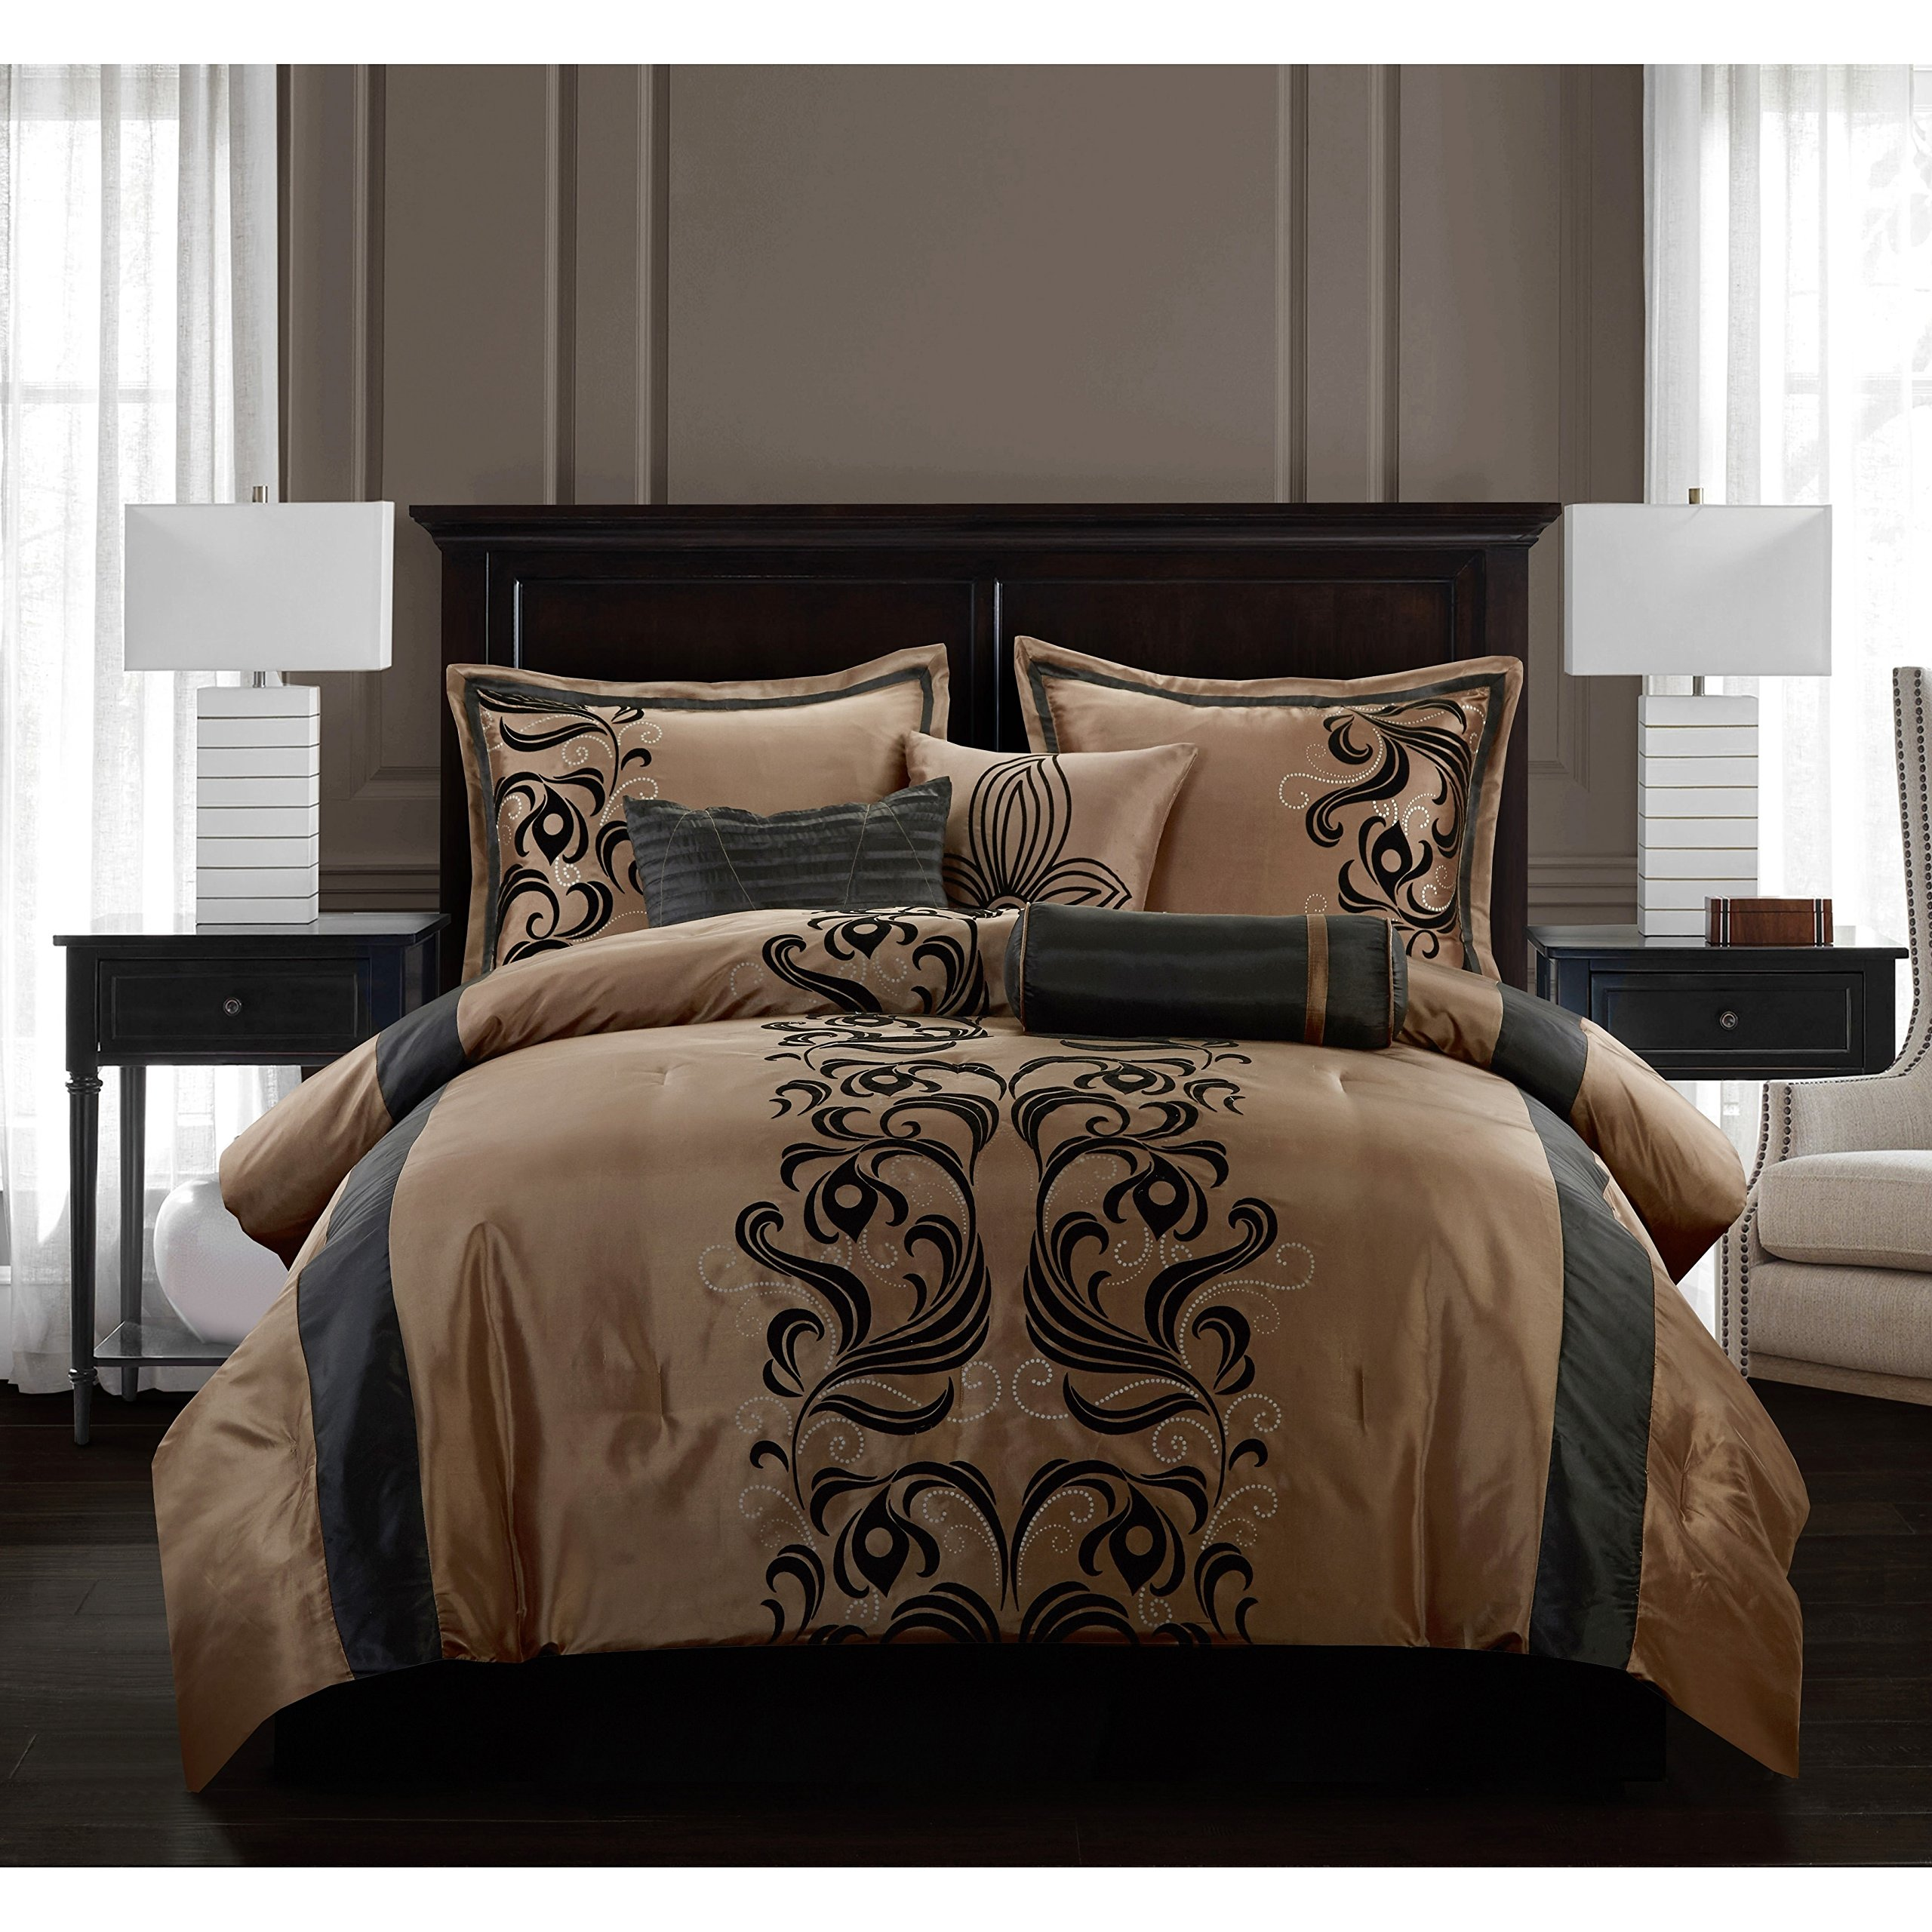 Nanshing America Madeline 7 Piece Bedding Set, Full, Bronze/Black